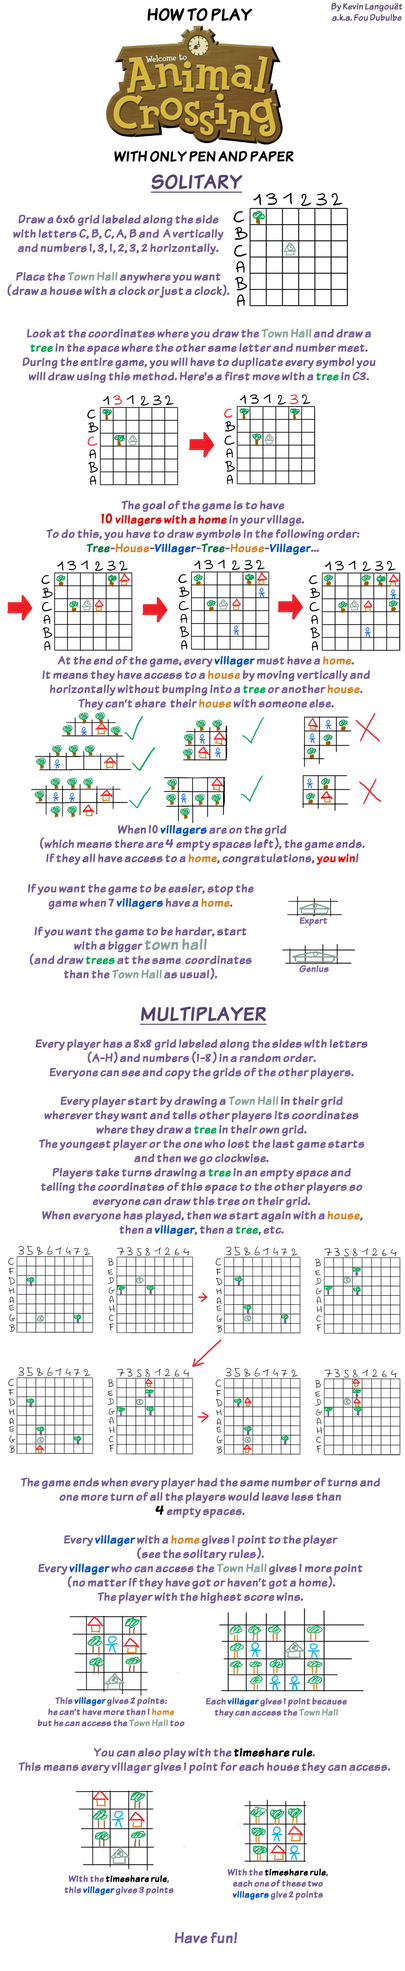 How to play Animal Crossing with pen and paper